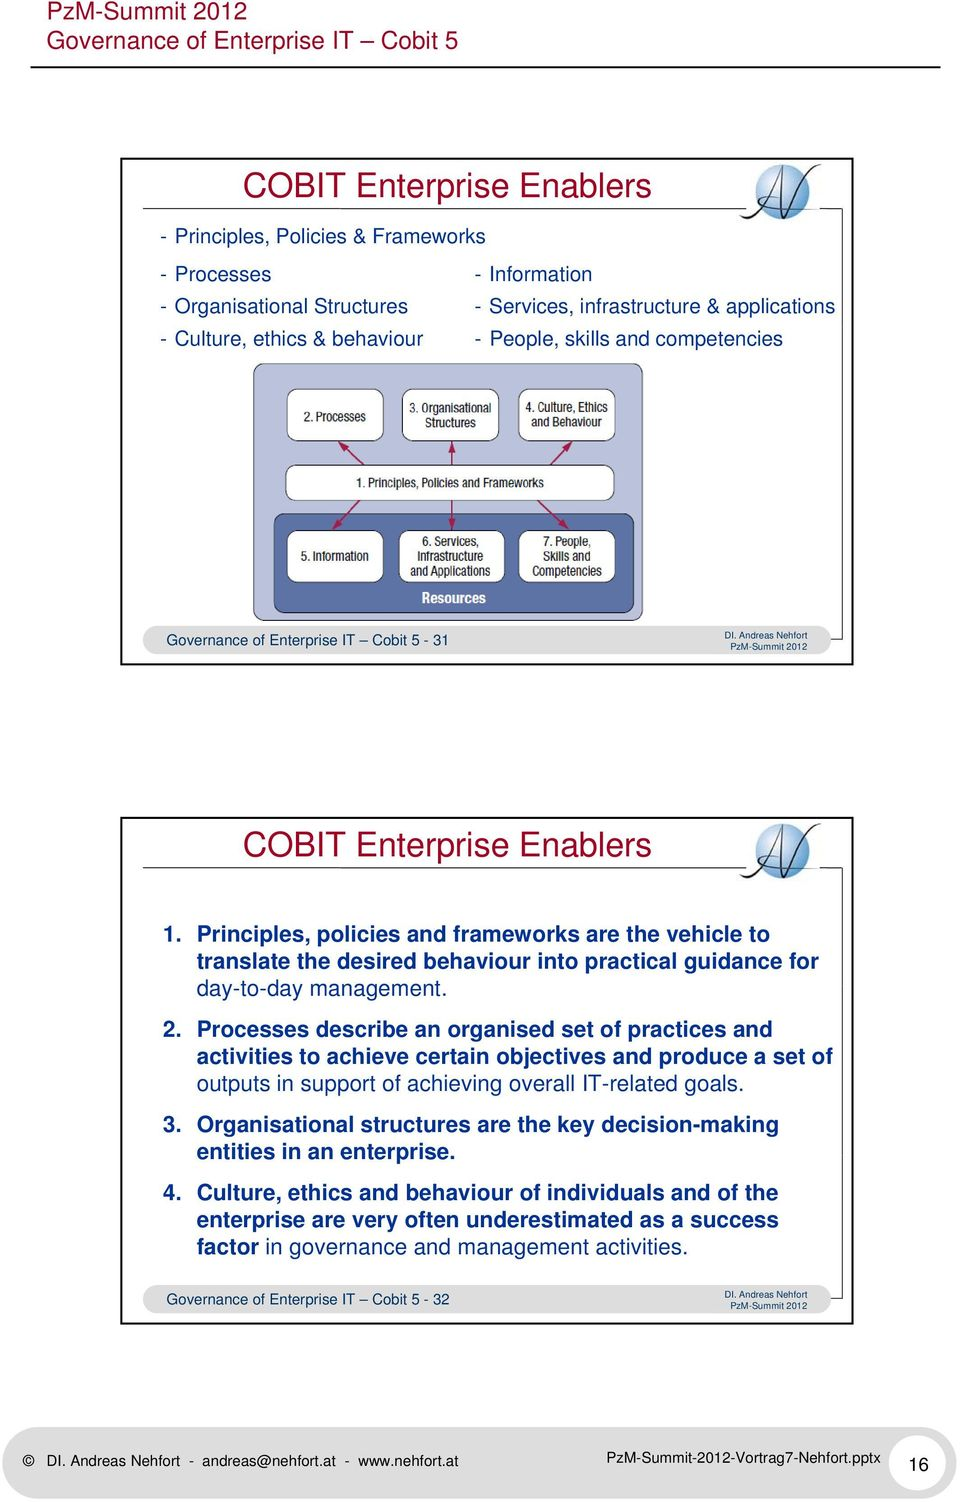 Processes describe an organised set of practices and activities to achieve certain objectives and produce a set of outputs in support of achieving overall IT-related goals. 3.